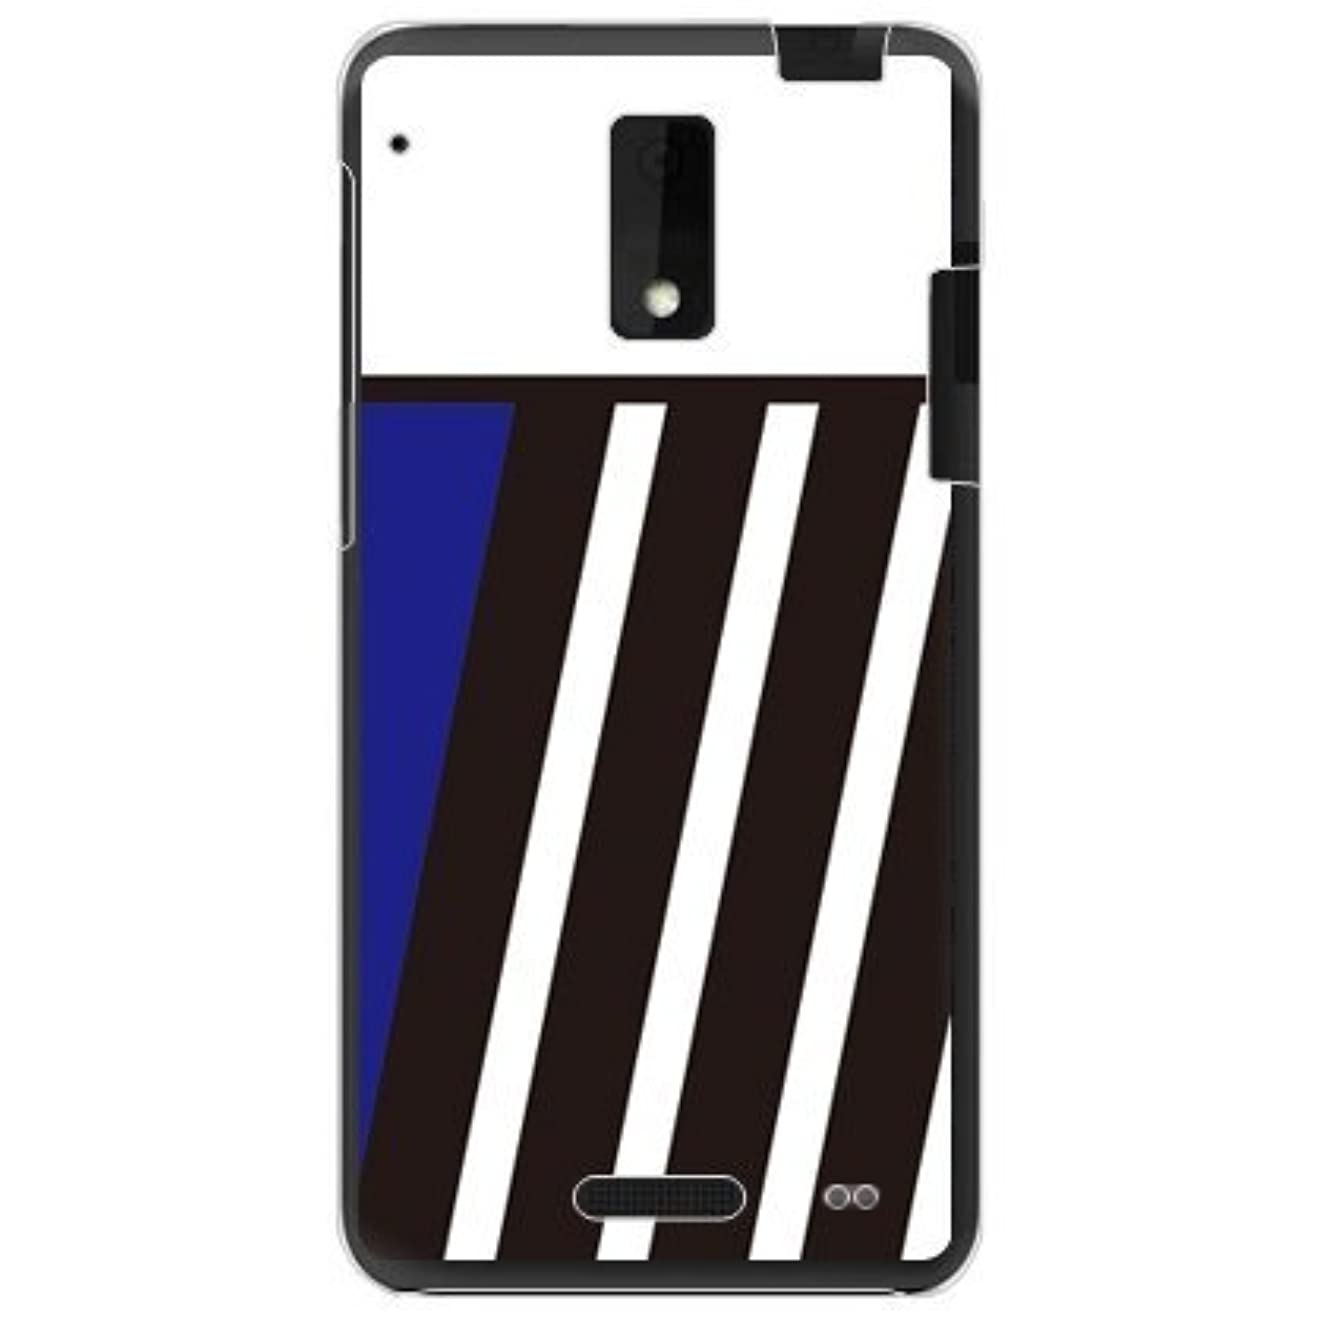 北極圏ケーブルカー狂うSECOND SKIN BLUE & BLACK ブルー (クリア) design by ROTM/for HTC J ISW13HT/au AHTJ13-PCCL-202-Y246